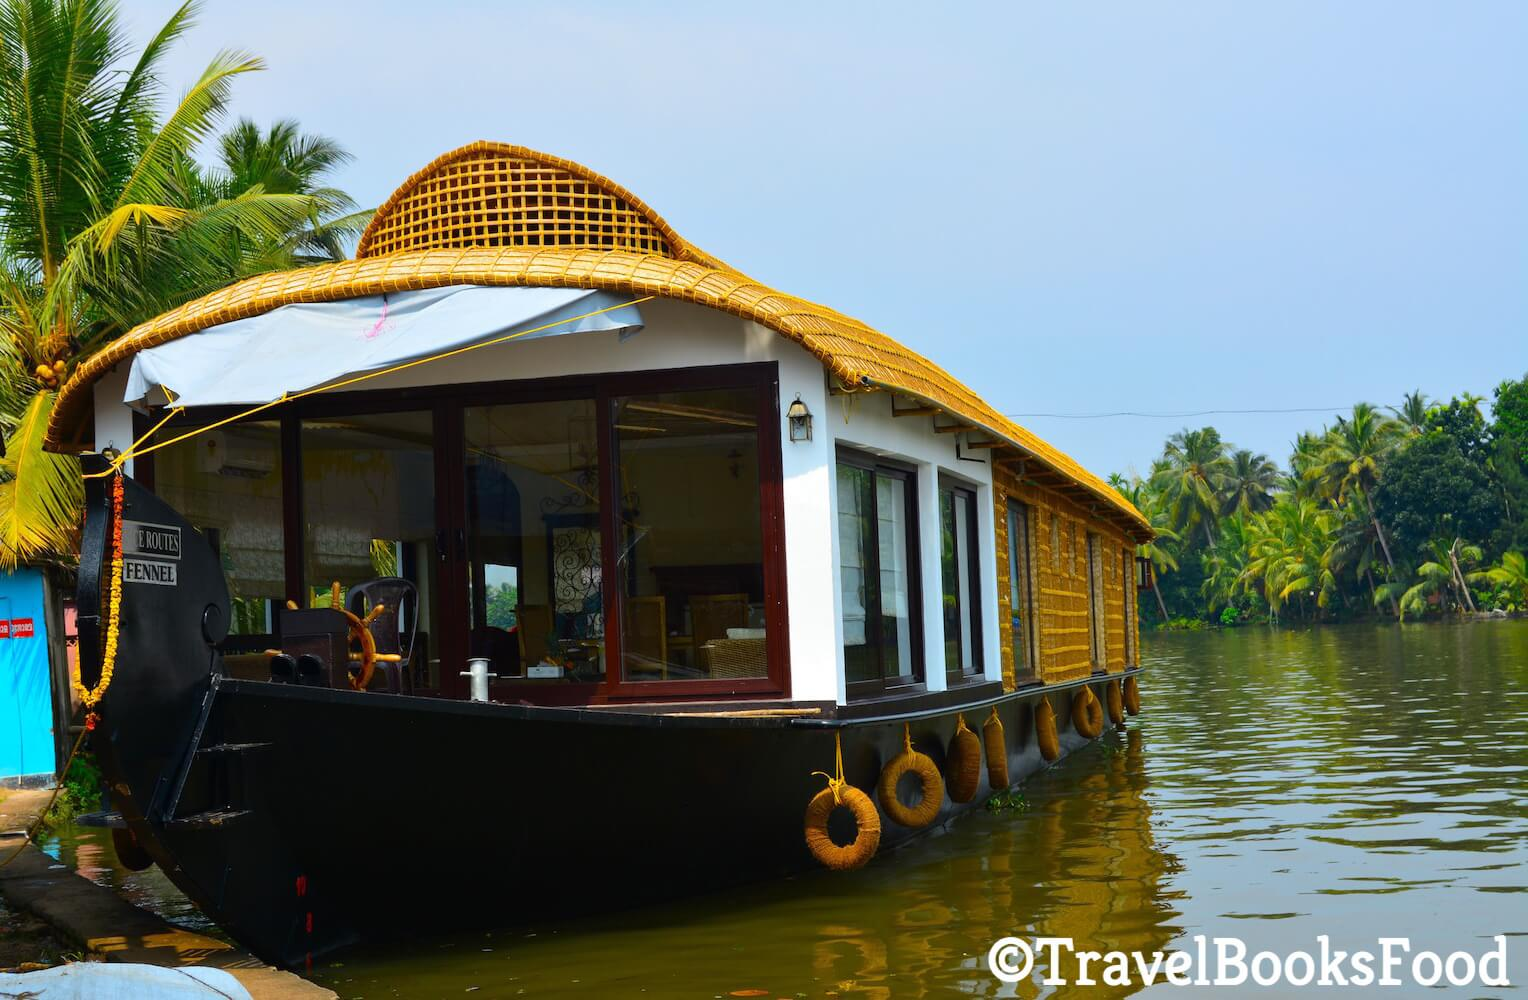 This is a picture of a luxury houseboat in Kerala, India